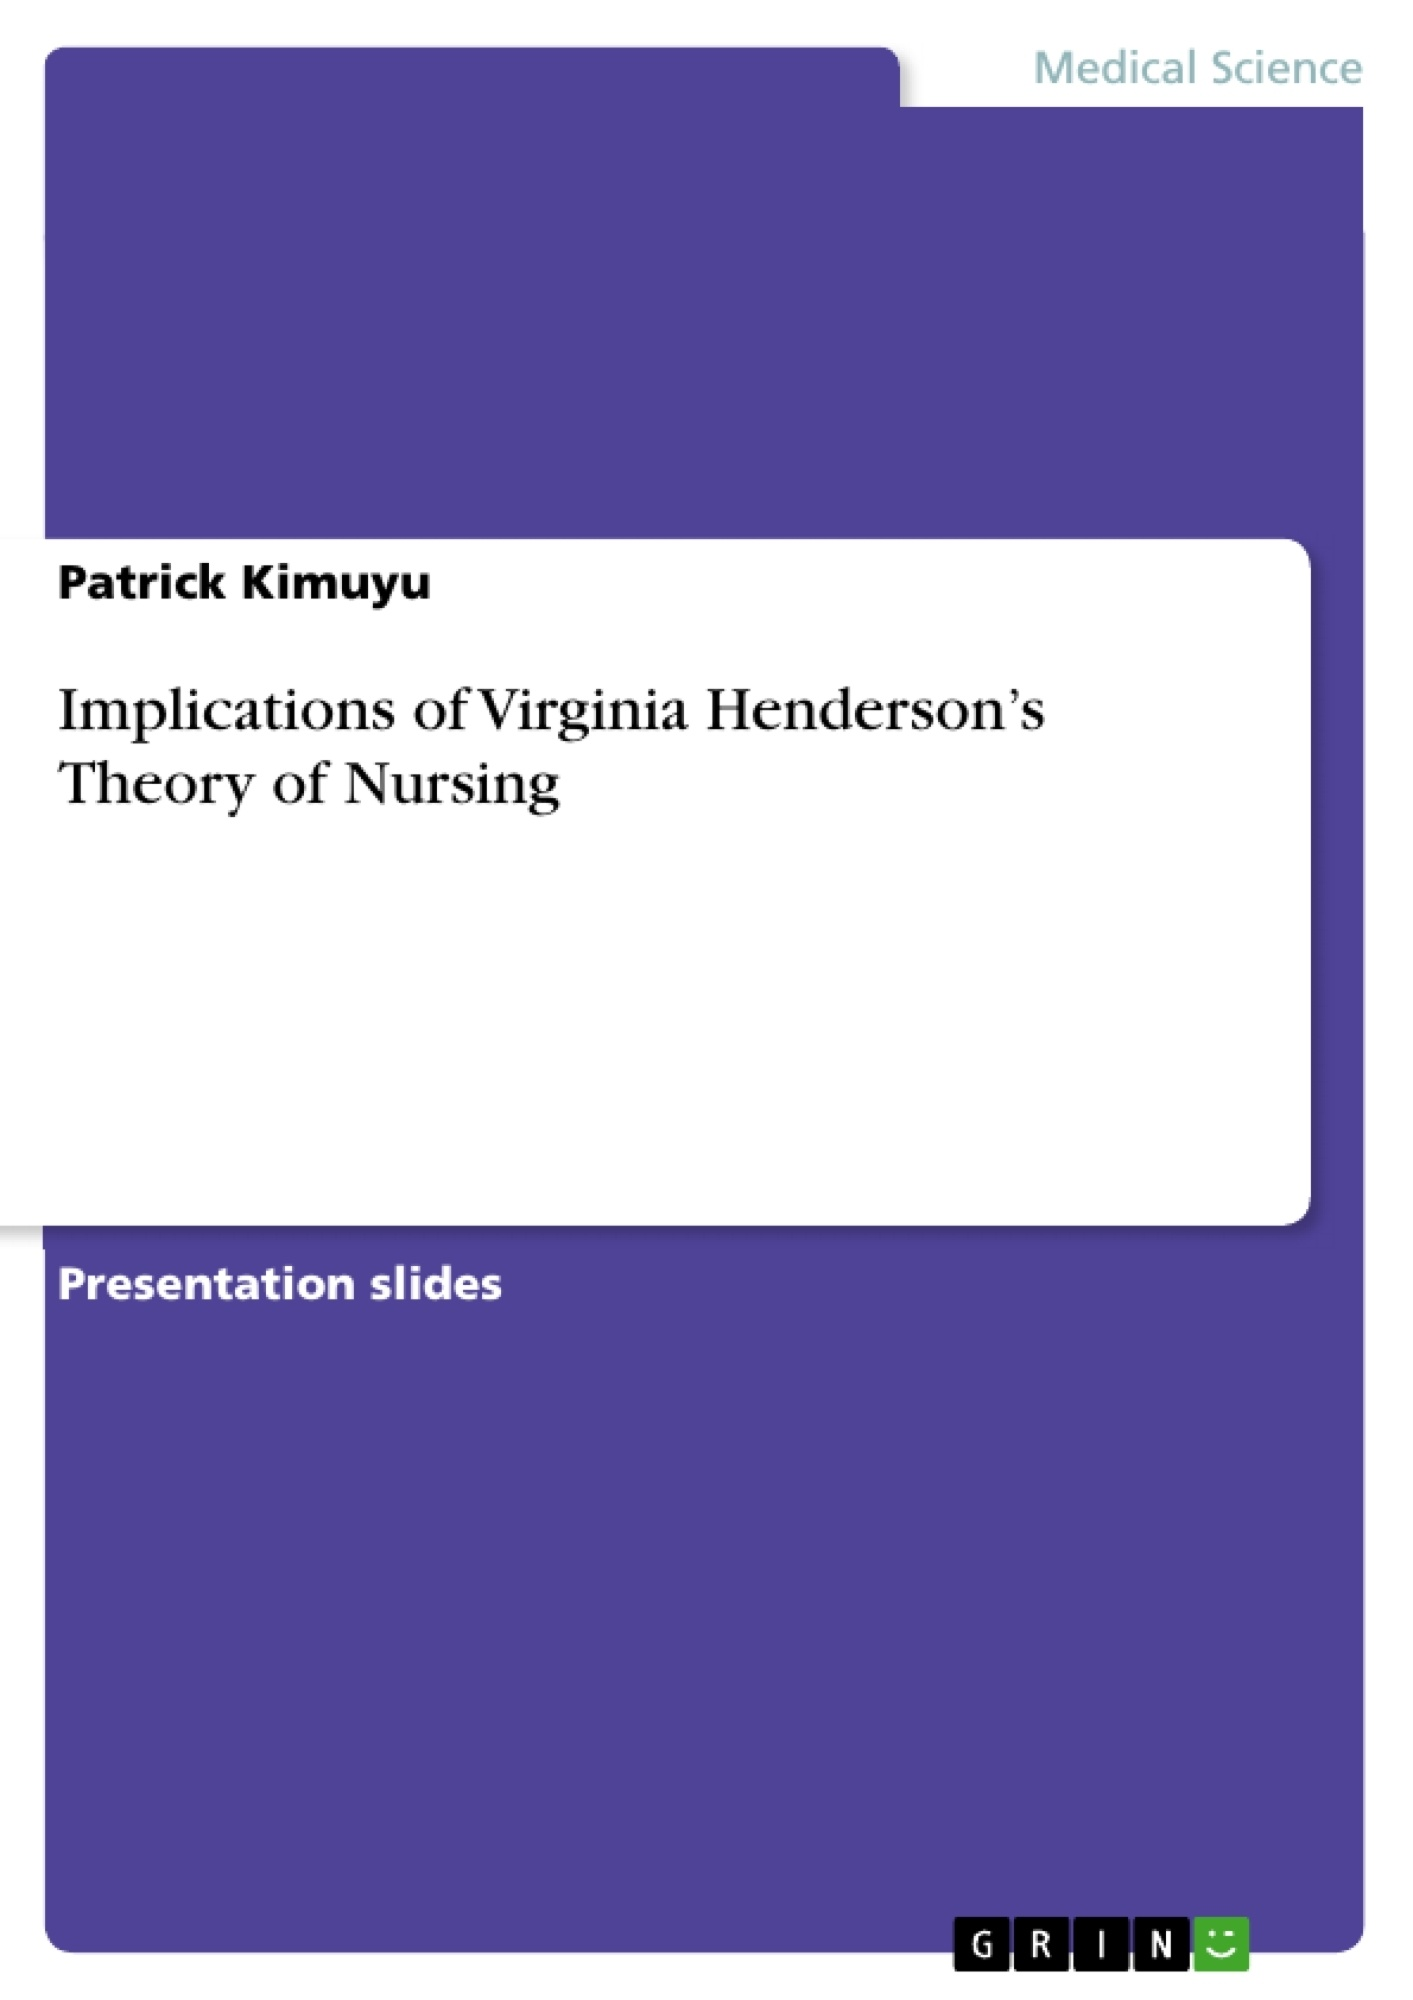 Term paper about your own nursing theory